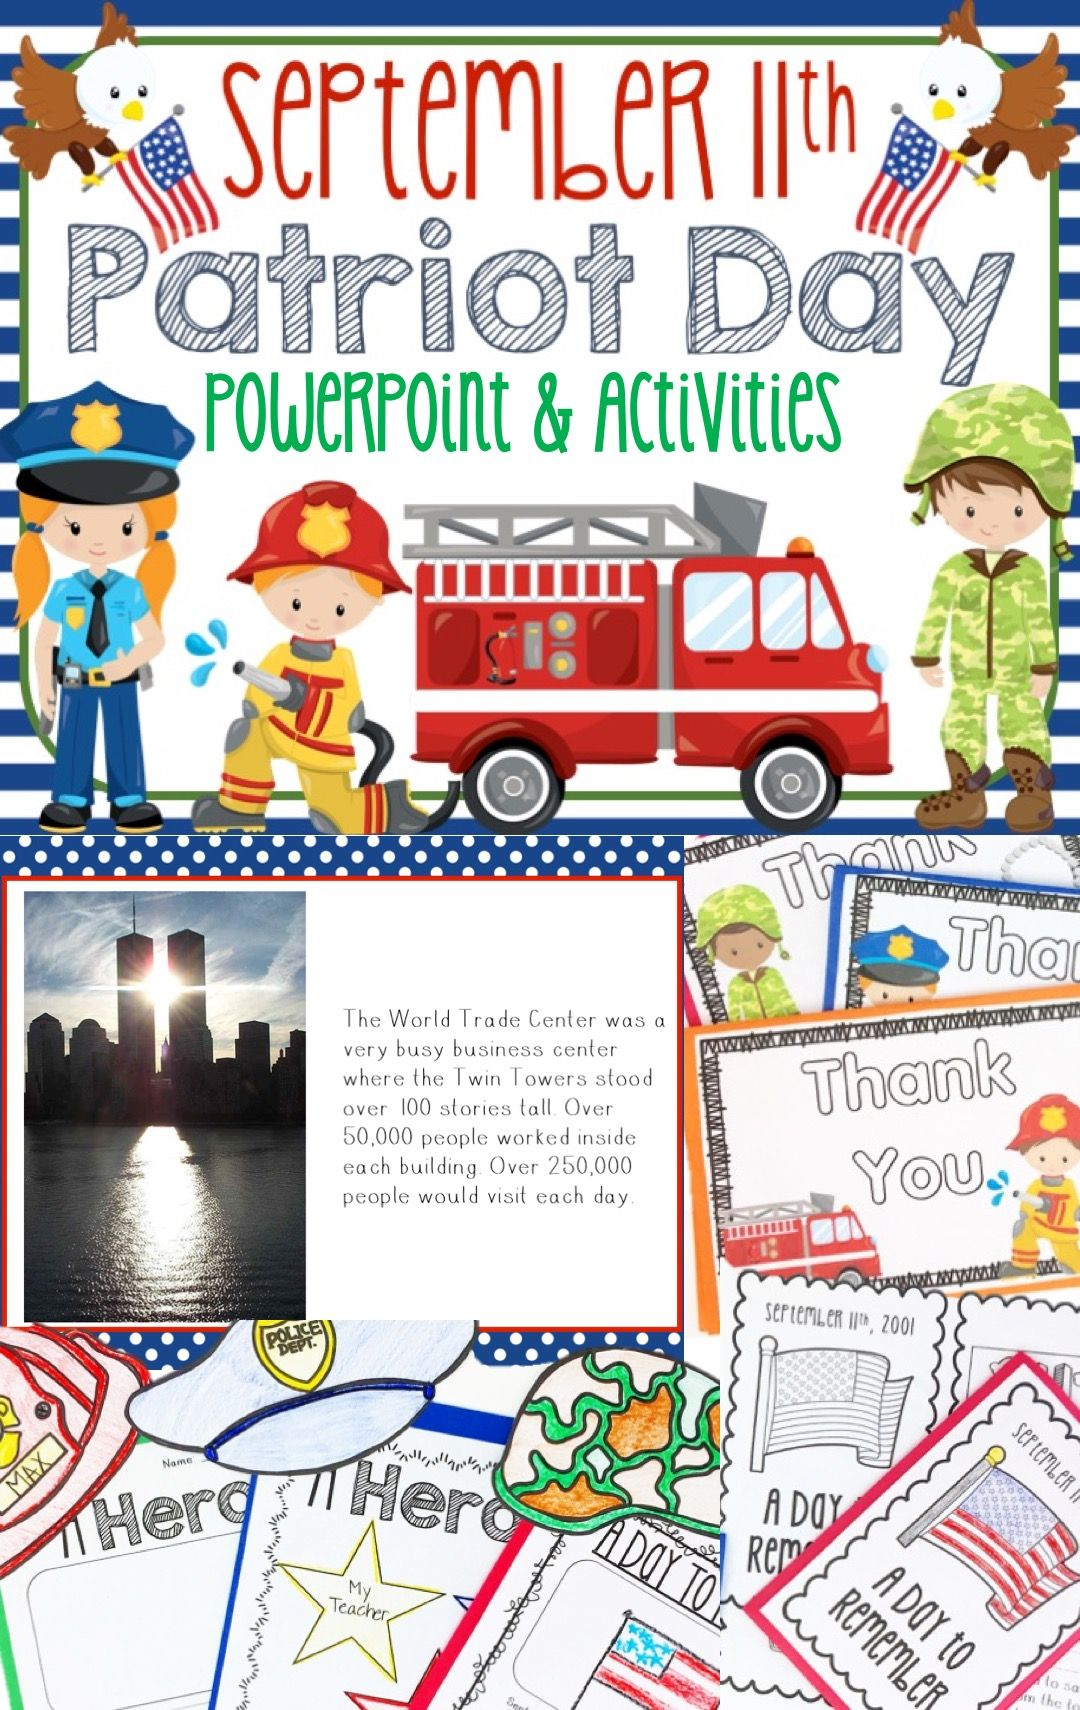 September 11th Patriot Day Power Point Lesson Activities Pack September 11 Patriots Day Activities Patriots Day First Grade Lessons